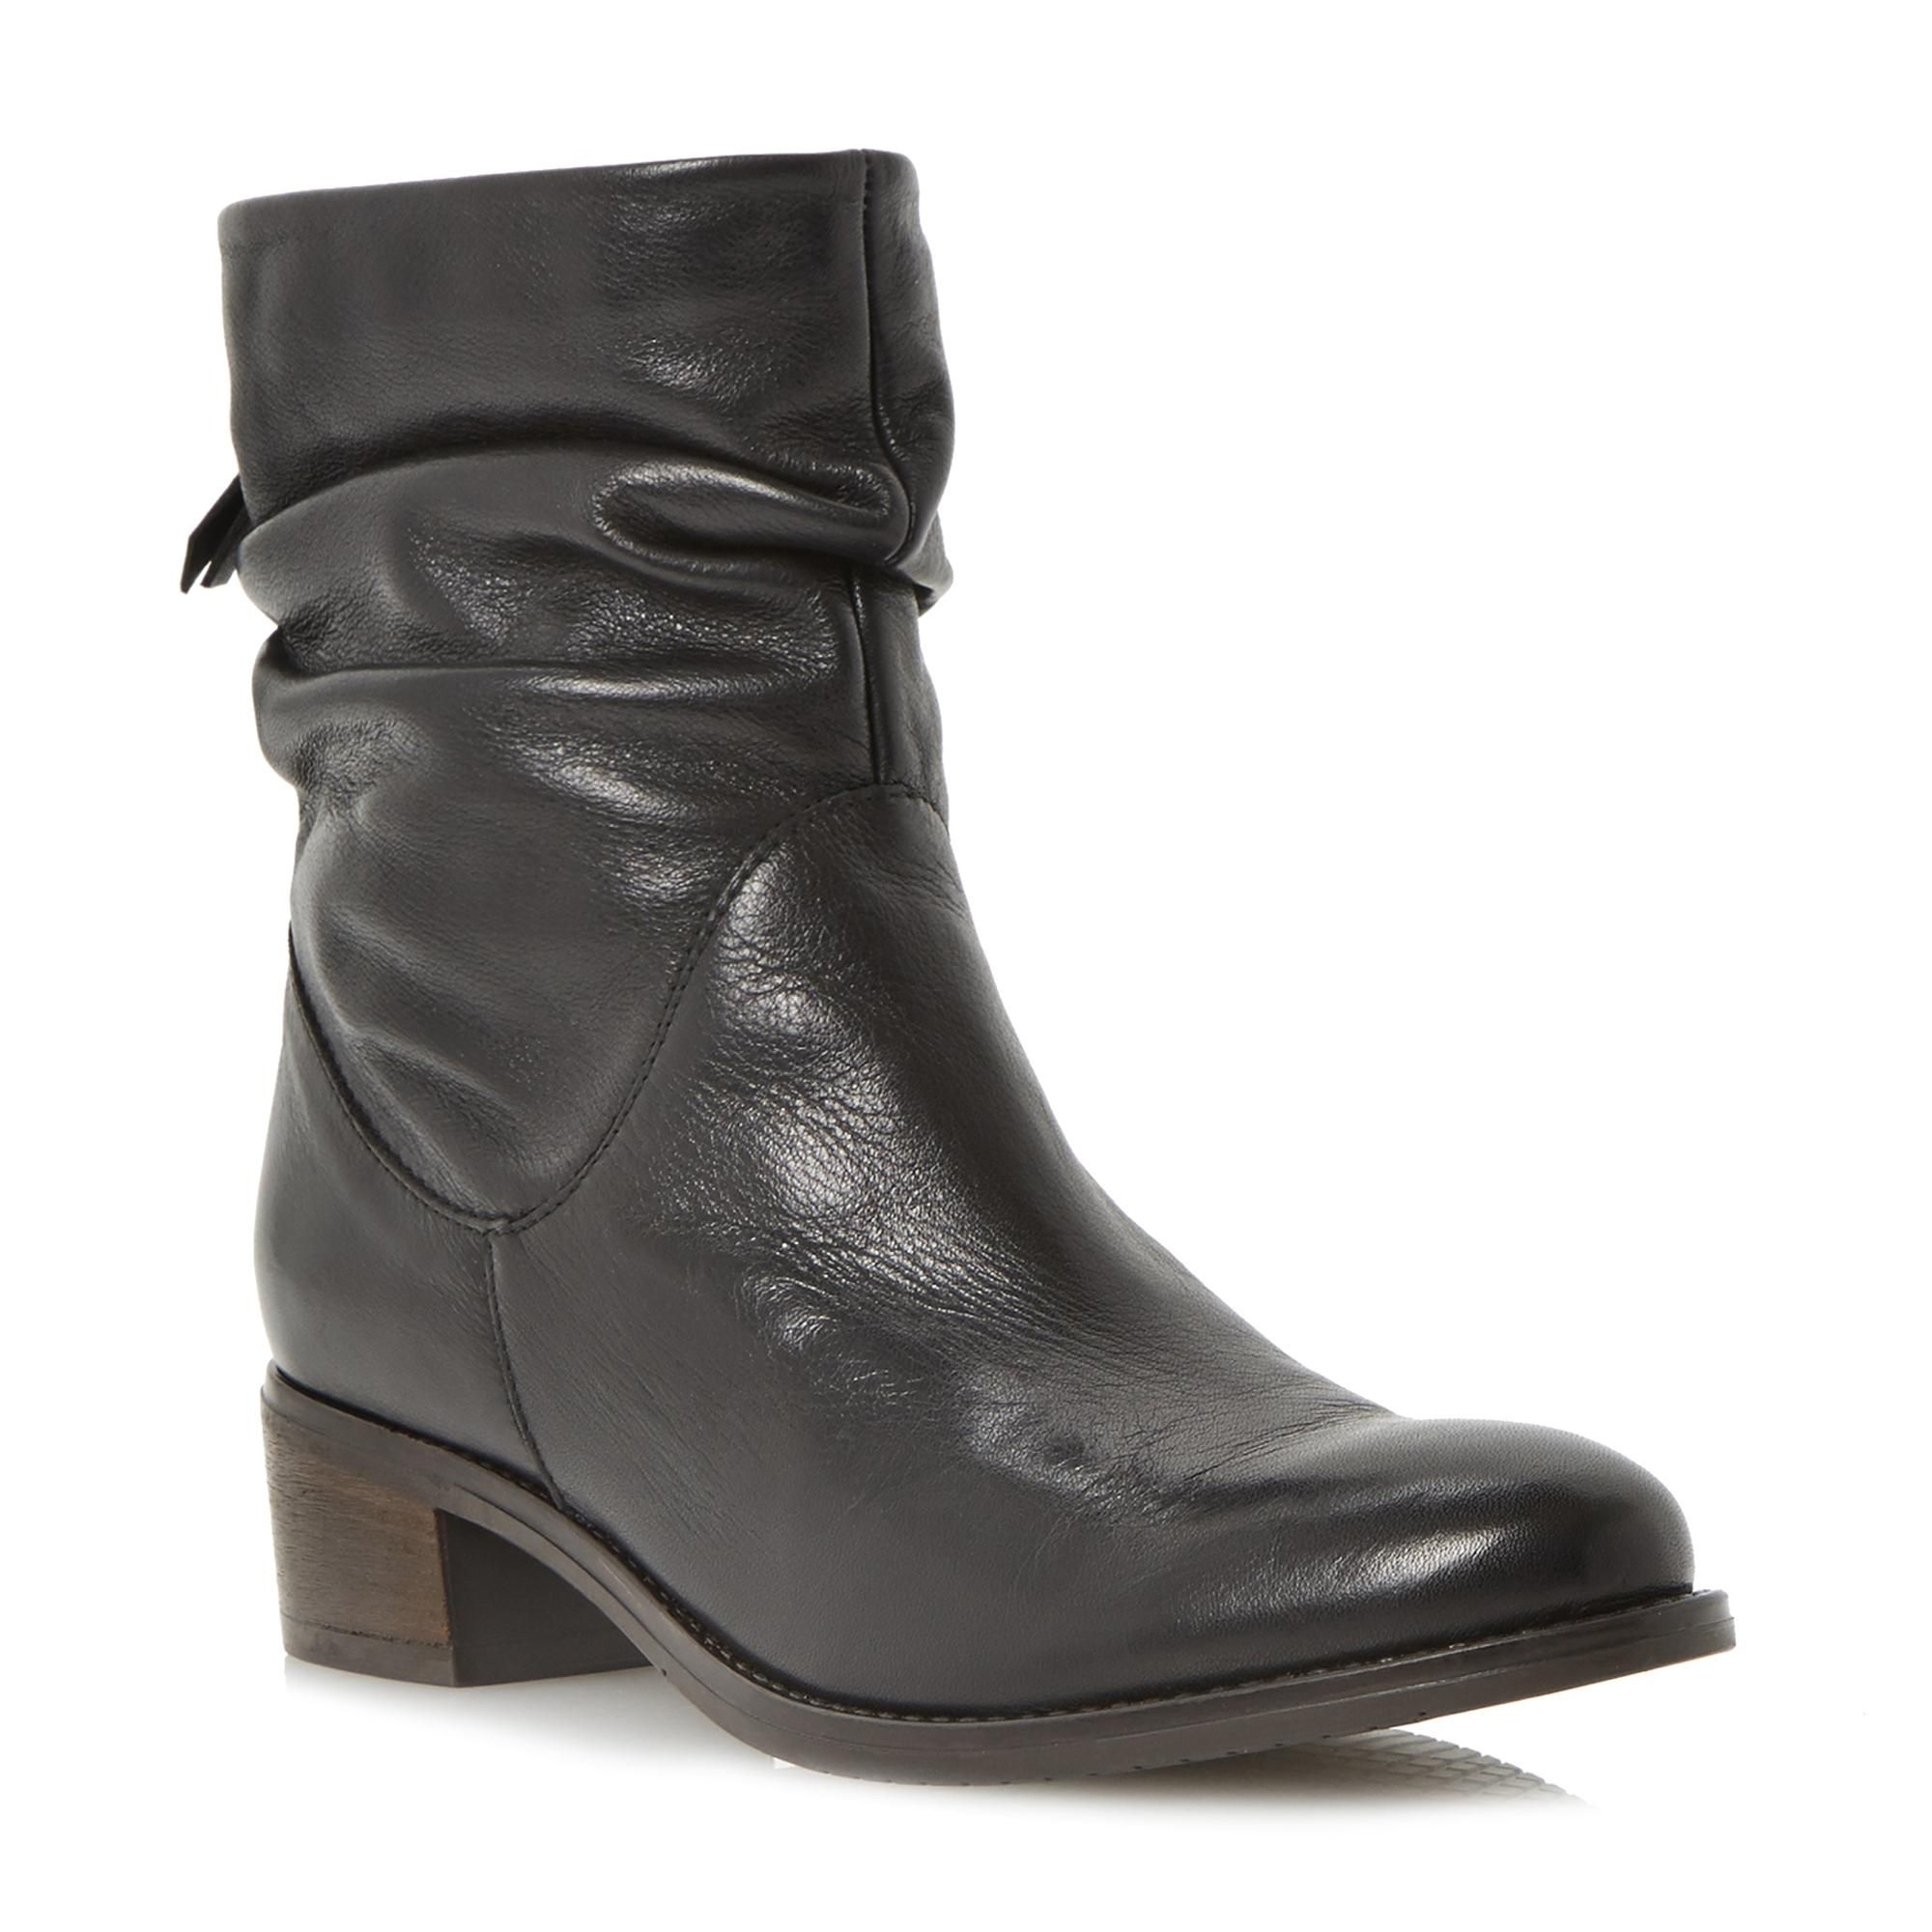 DUNE LADIES PAGER - Ruched Leather Block Heel Ankle Boot - black | Dune  Shoes Online